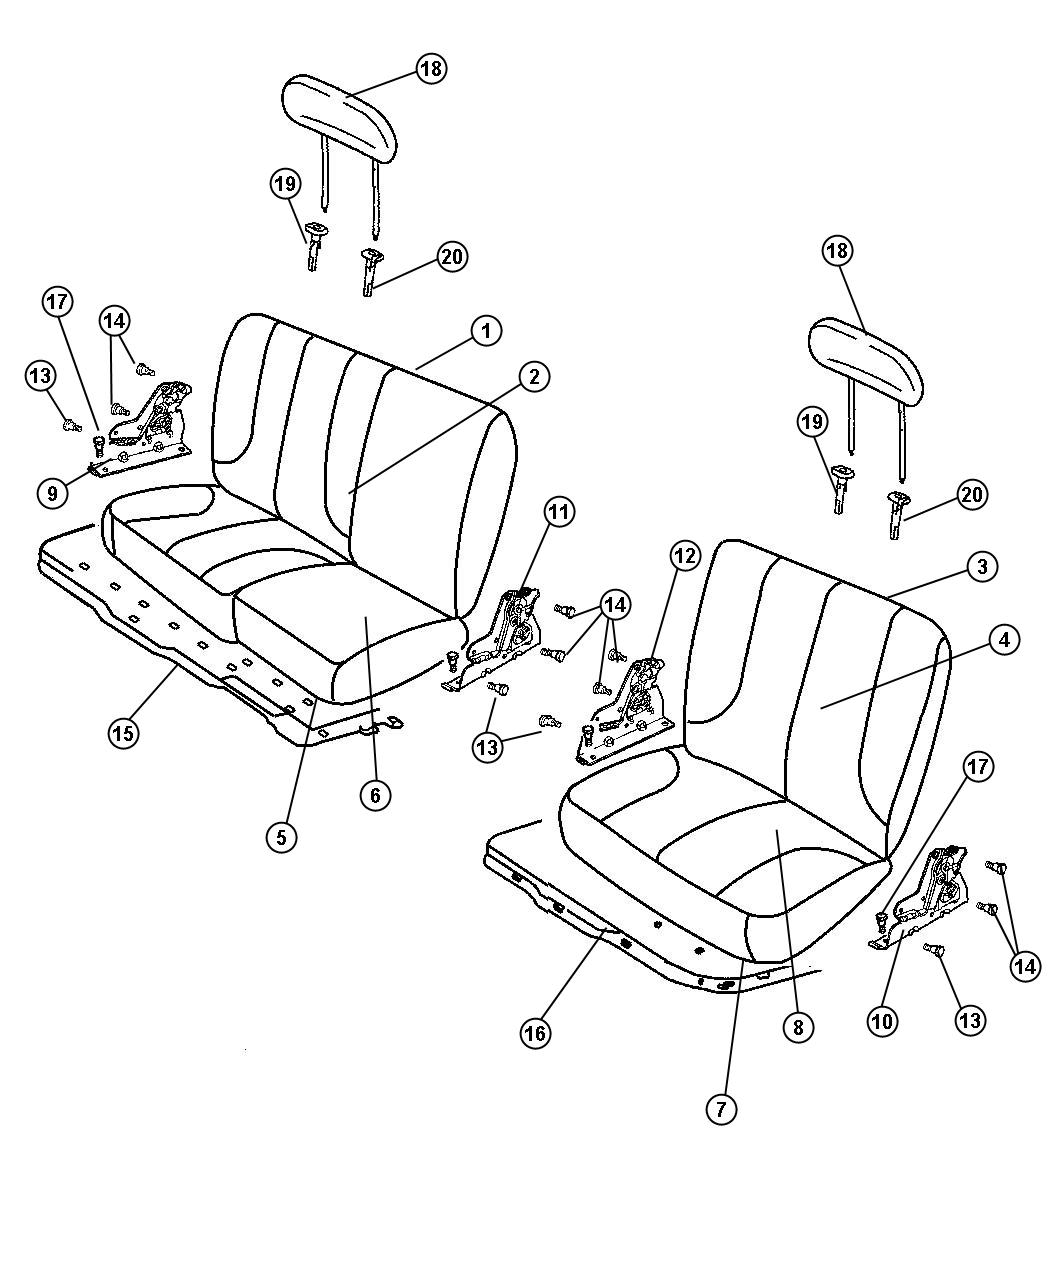 Diagram Rear Seat - Split Seat - Trim Code [GJ]. for your Dodge